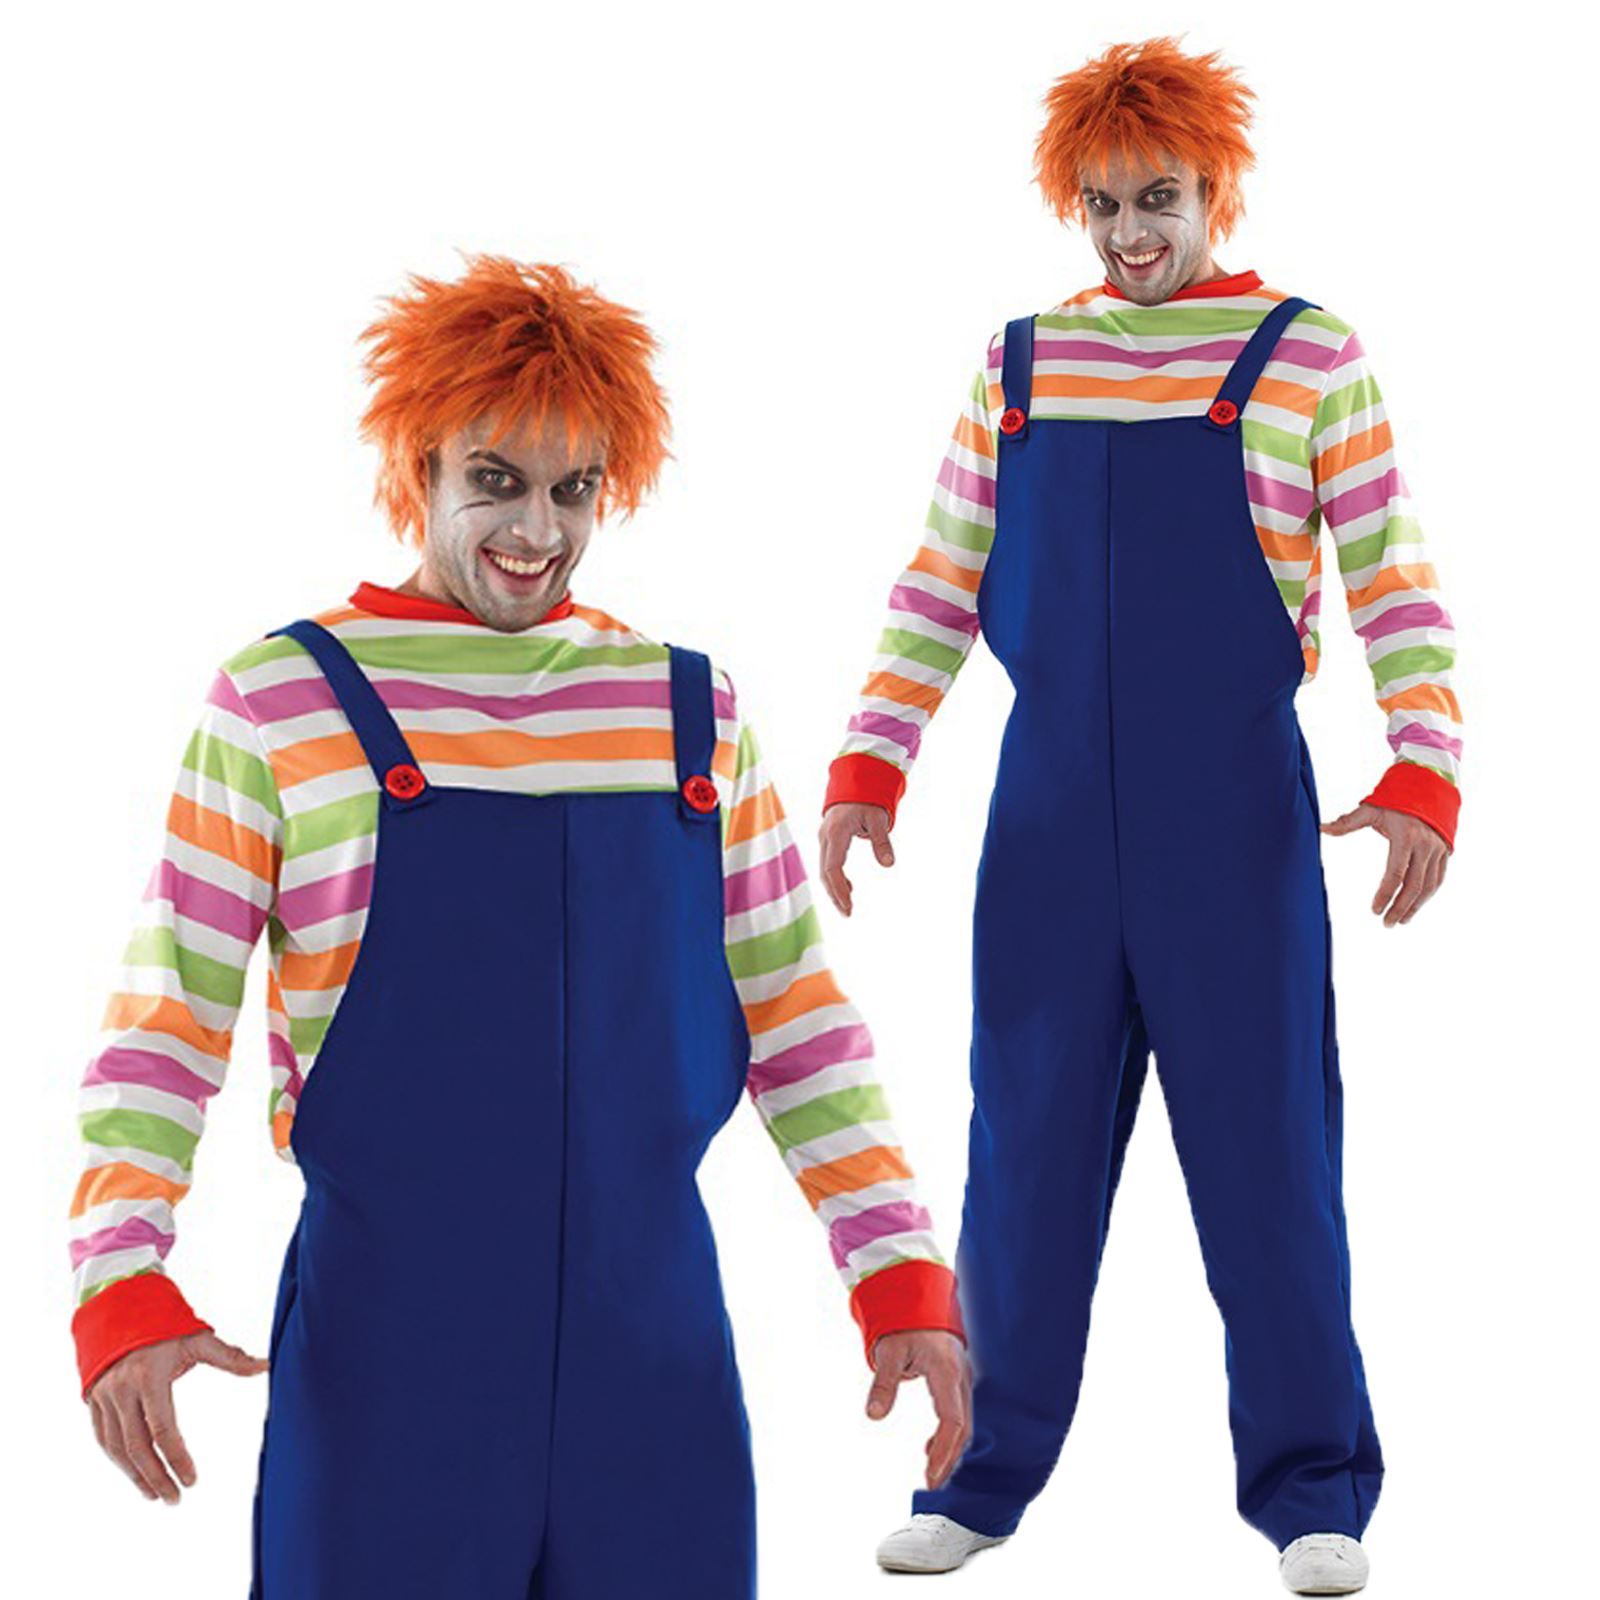 mens adult film horror chucky evil doll childs play halloween fancy dress outfit ebay. Black Bedroom Furniture Sets. Home Design Ideas